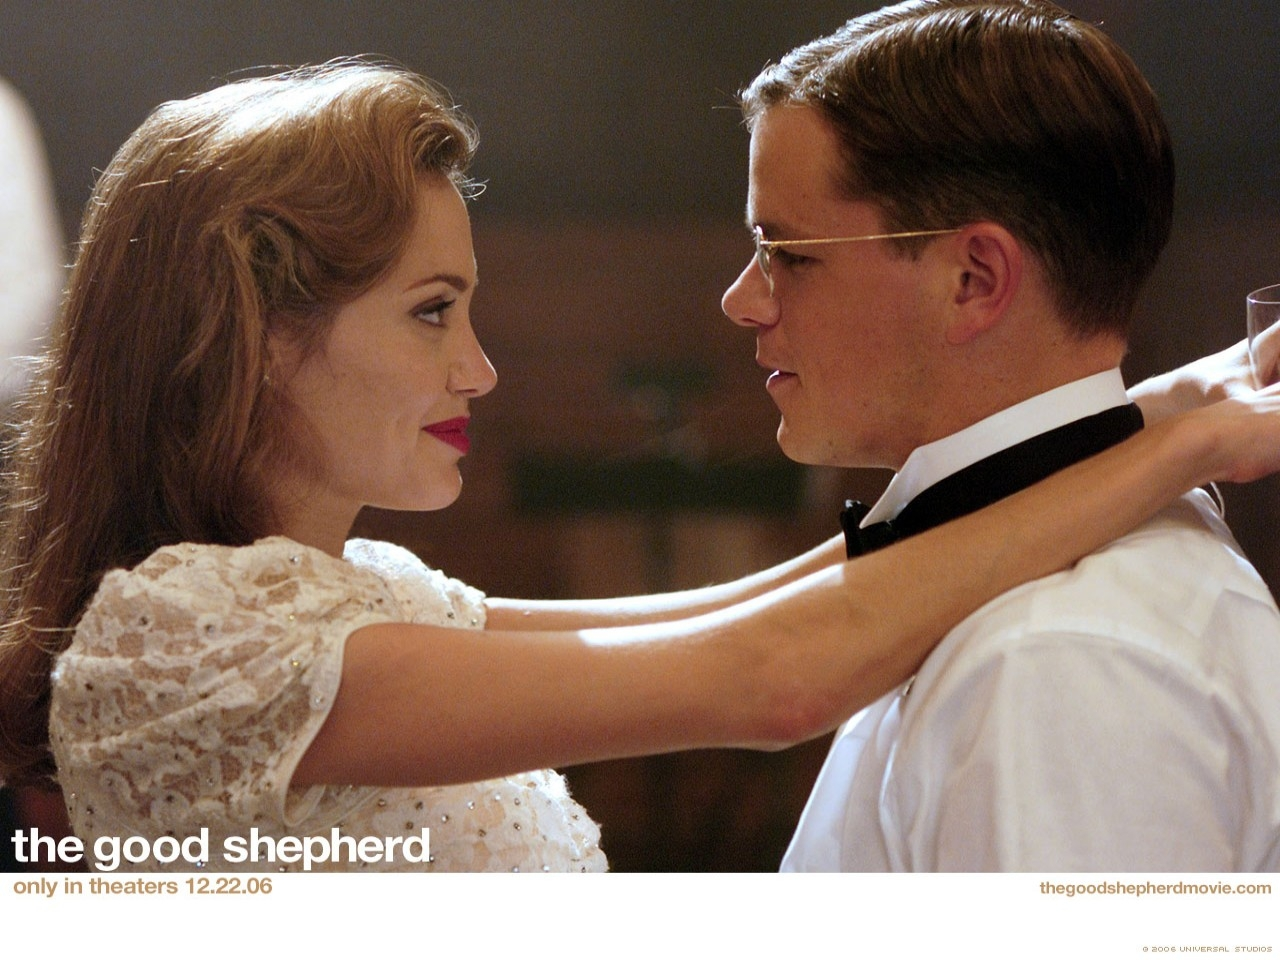 Wallpaper del film The Good Shepherd - L'ombra del potere con Damon e la Jolie